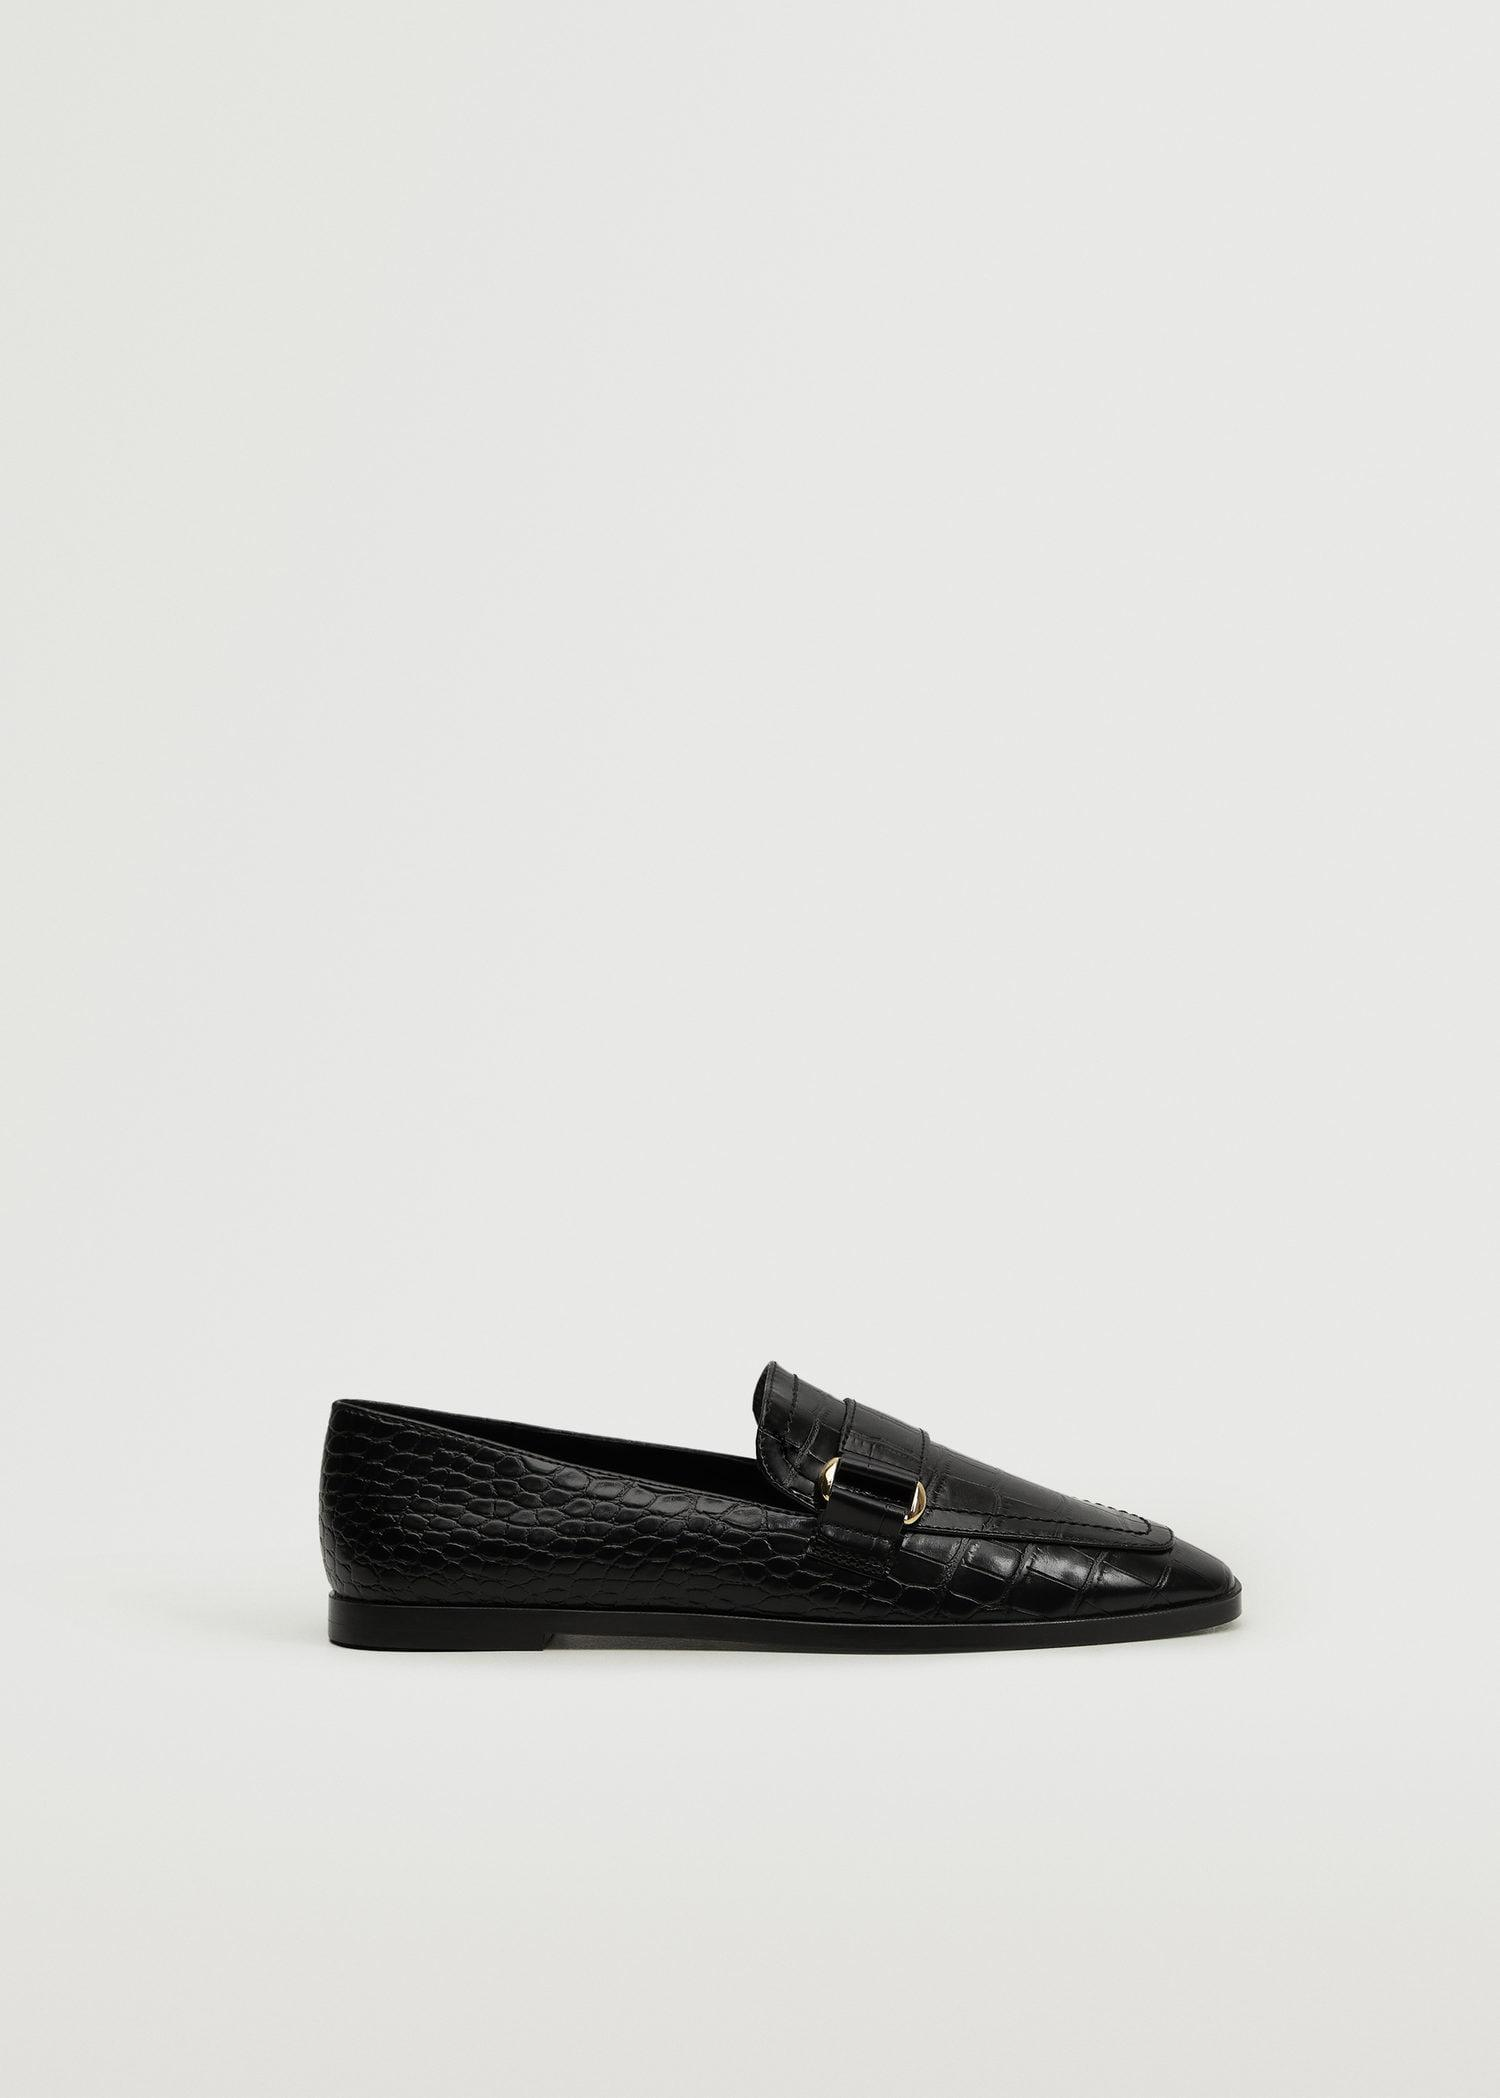 Buckle coco moccasins